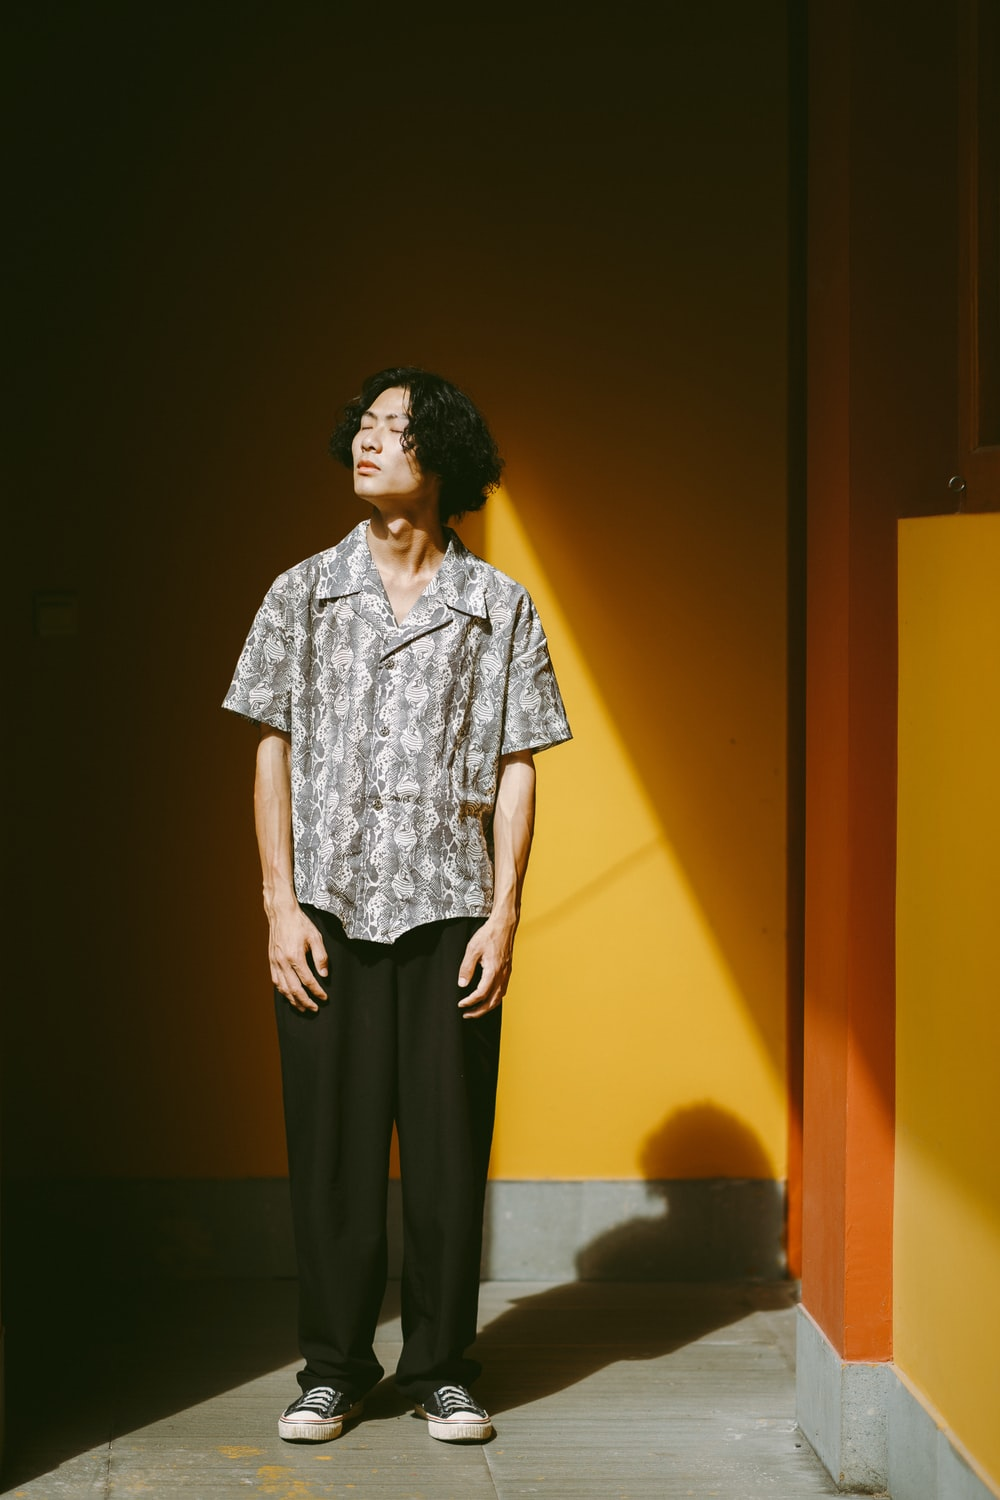 woman in white and black button up shirt and black pants standing beside yellow wall